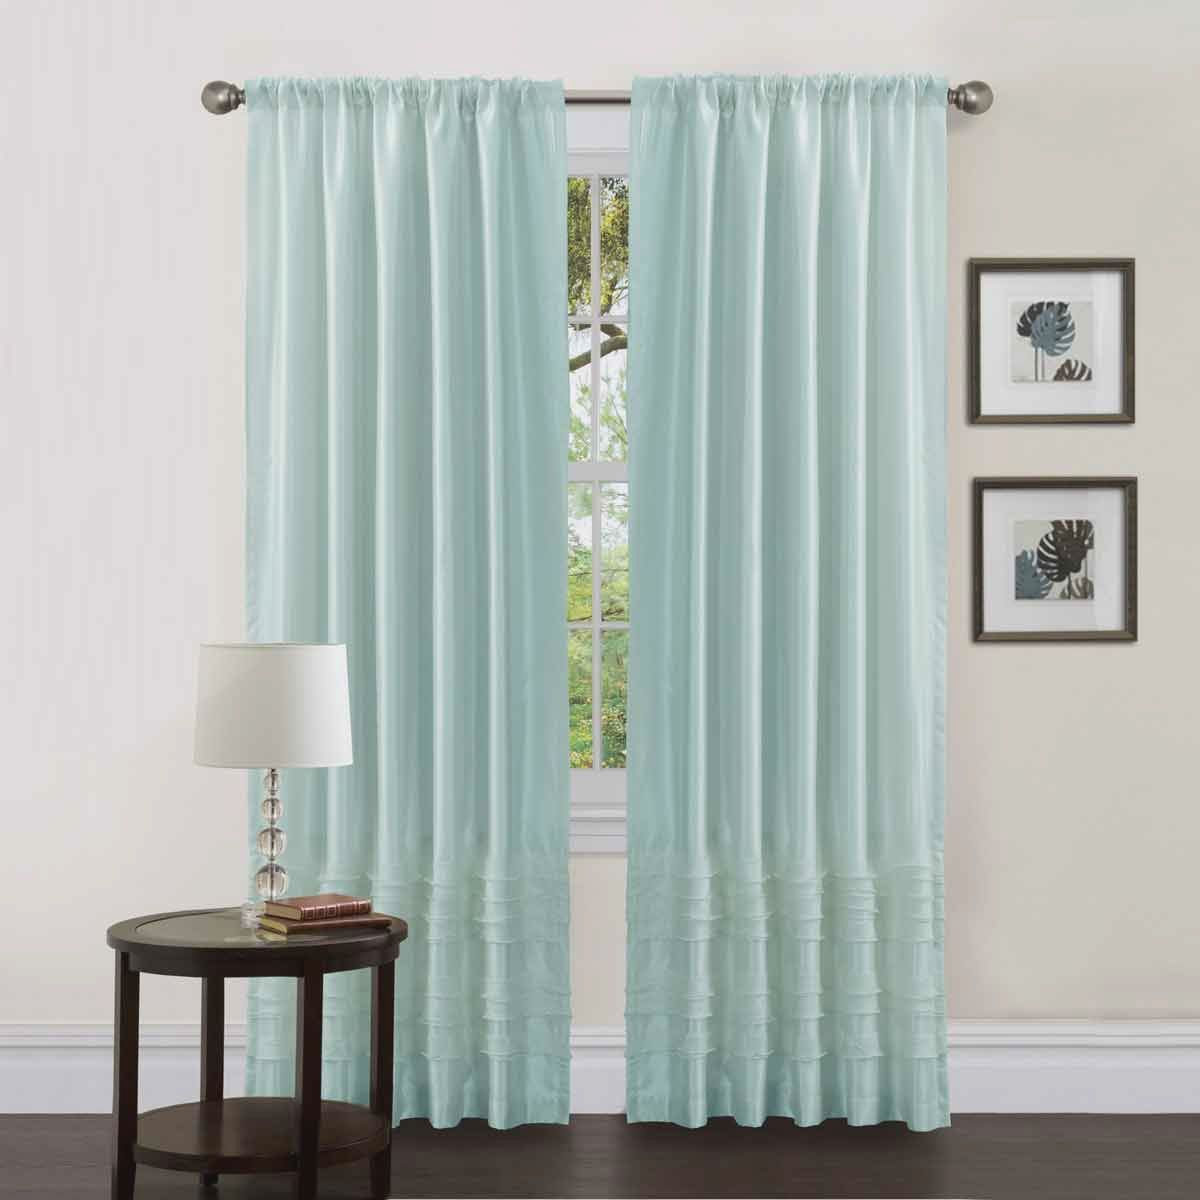 Simple Bedroom Curtains simple curtain designs for bedroom more picture simple curtain